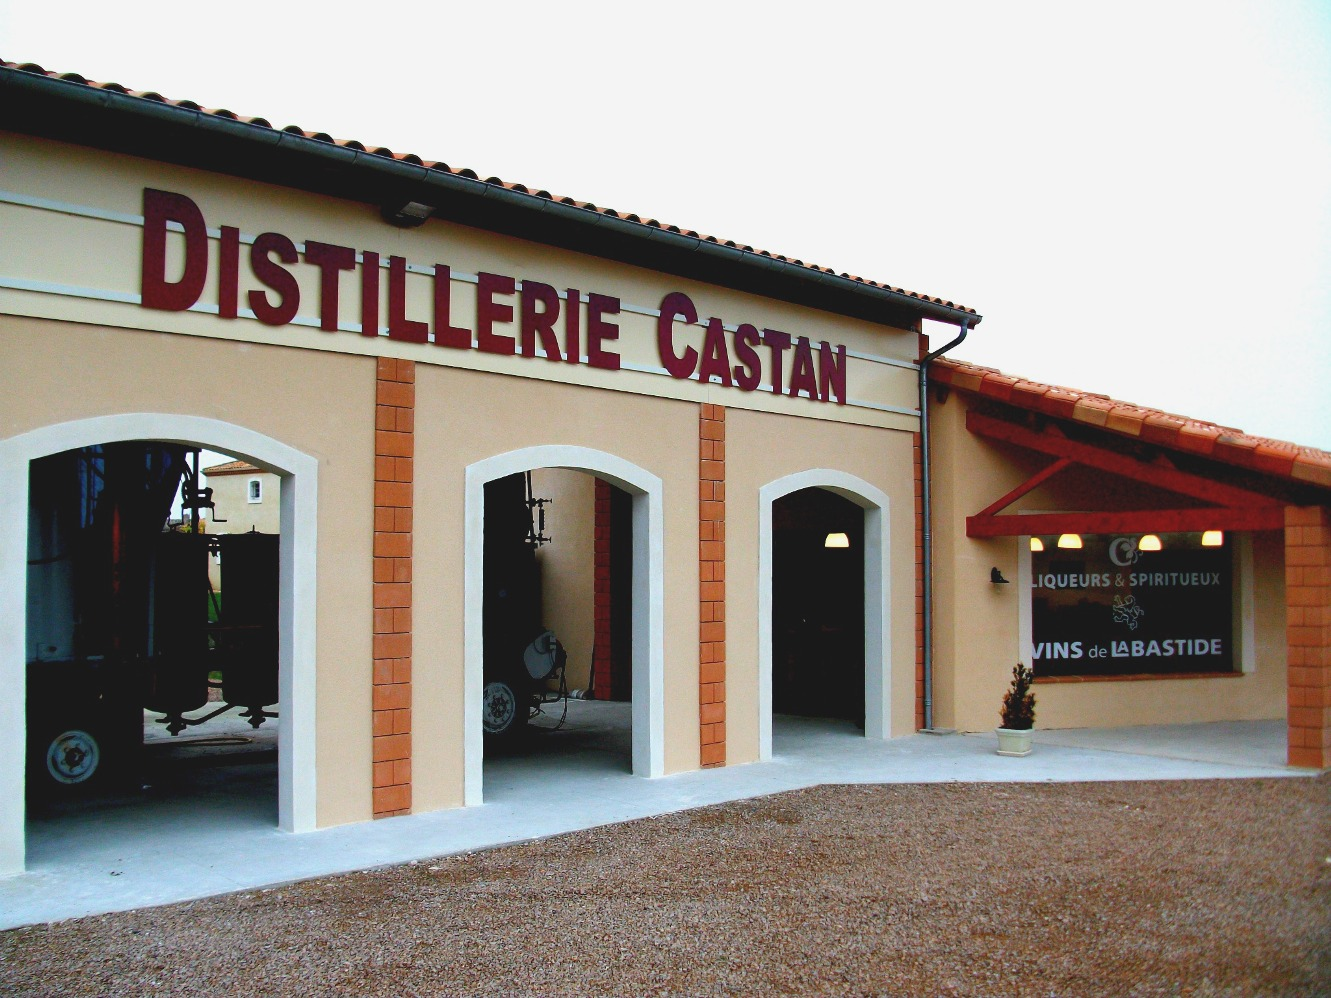 https://www.investinfrance.co.uk/wp-content/uploads/2018/01/distillerie_exterieur_015.jpg